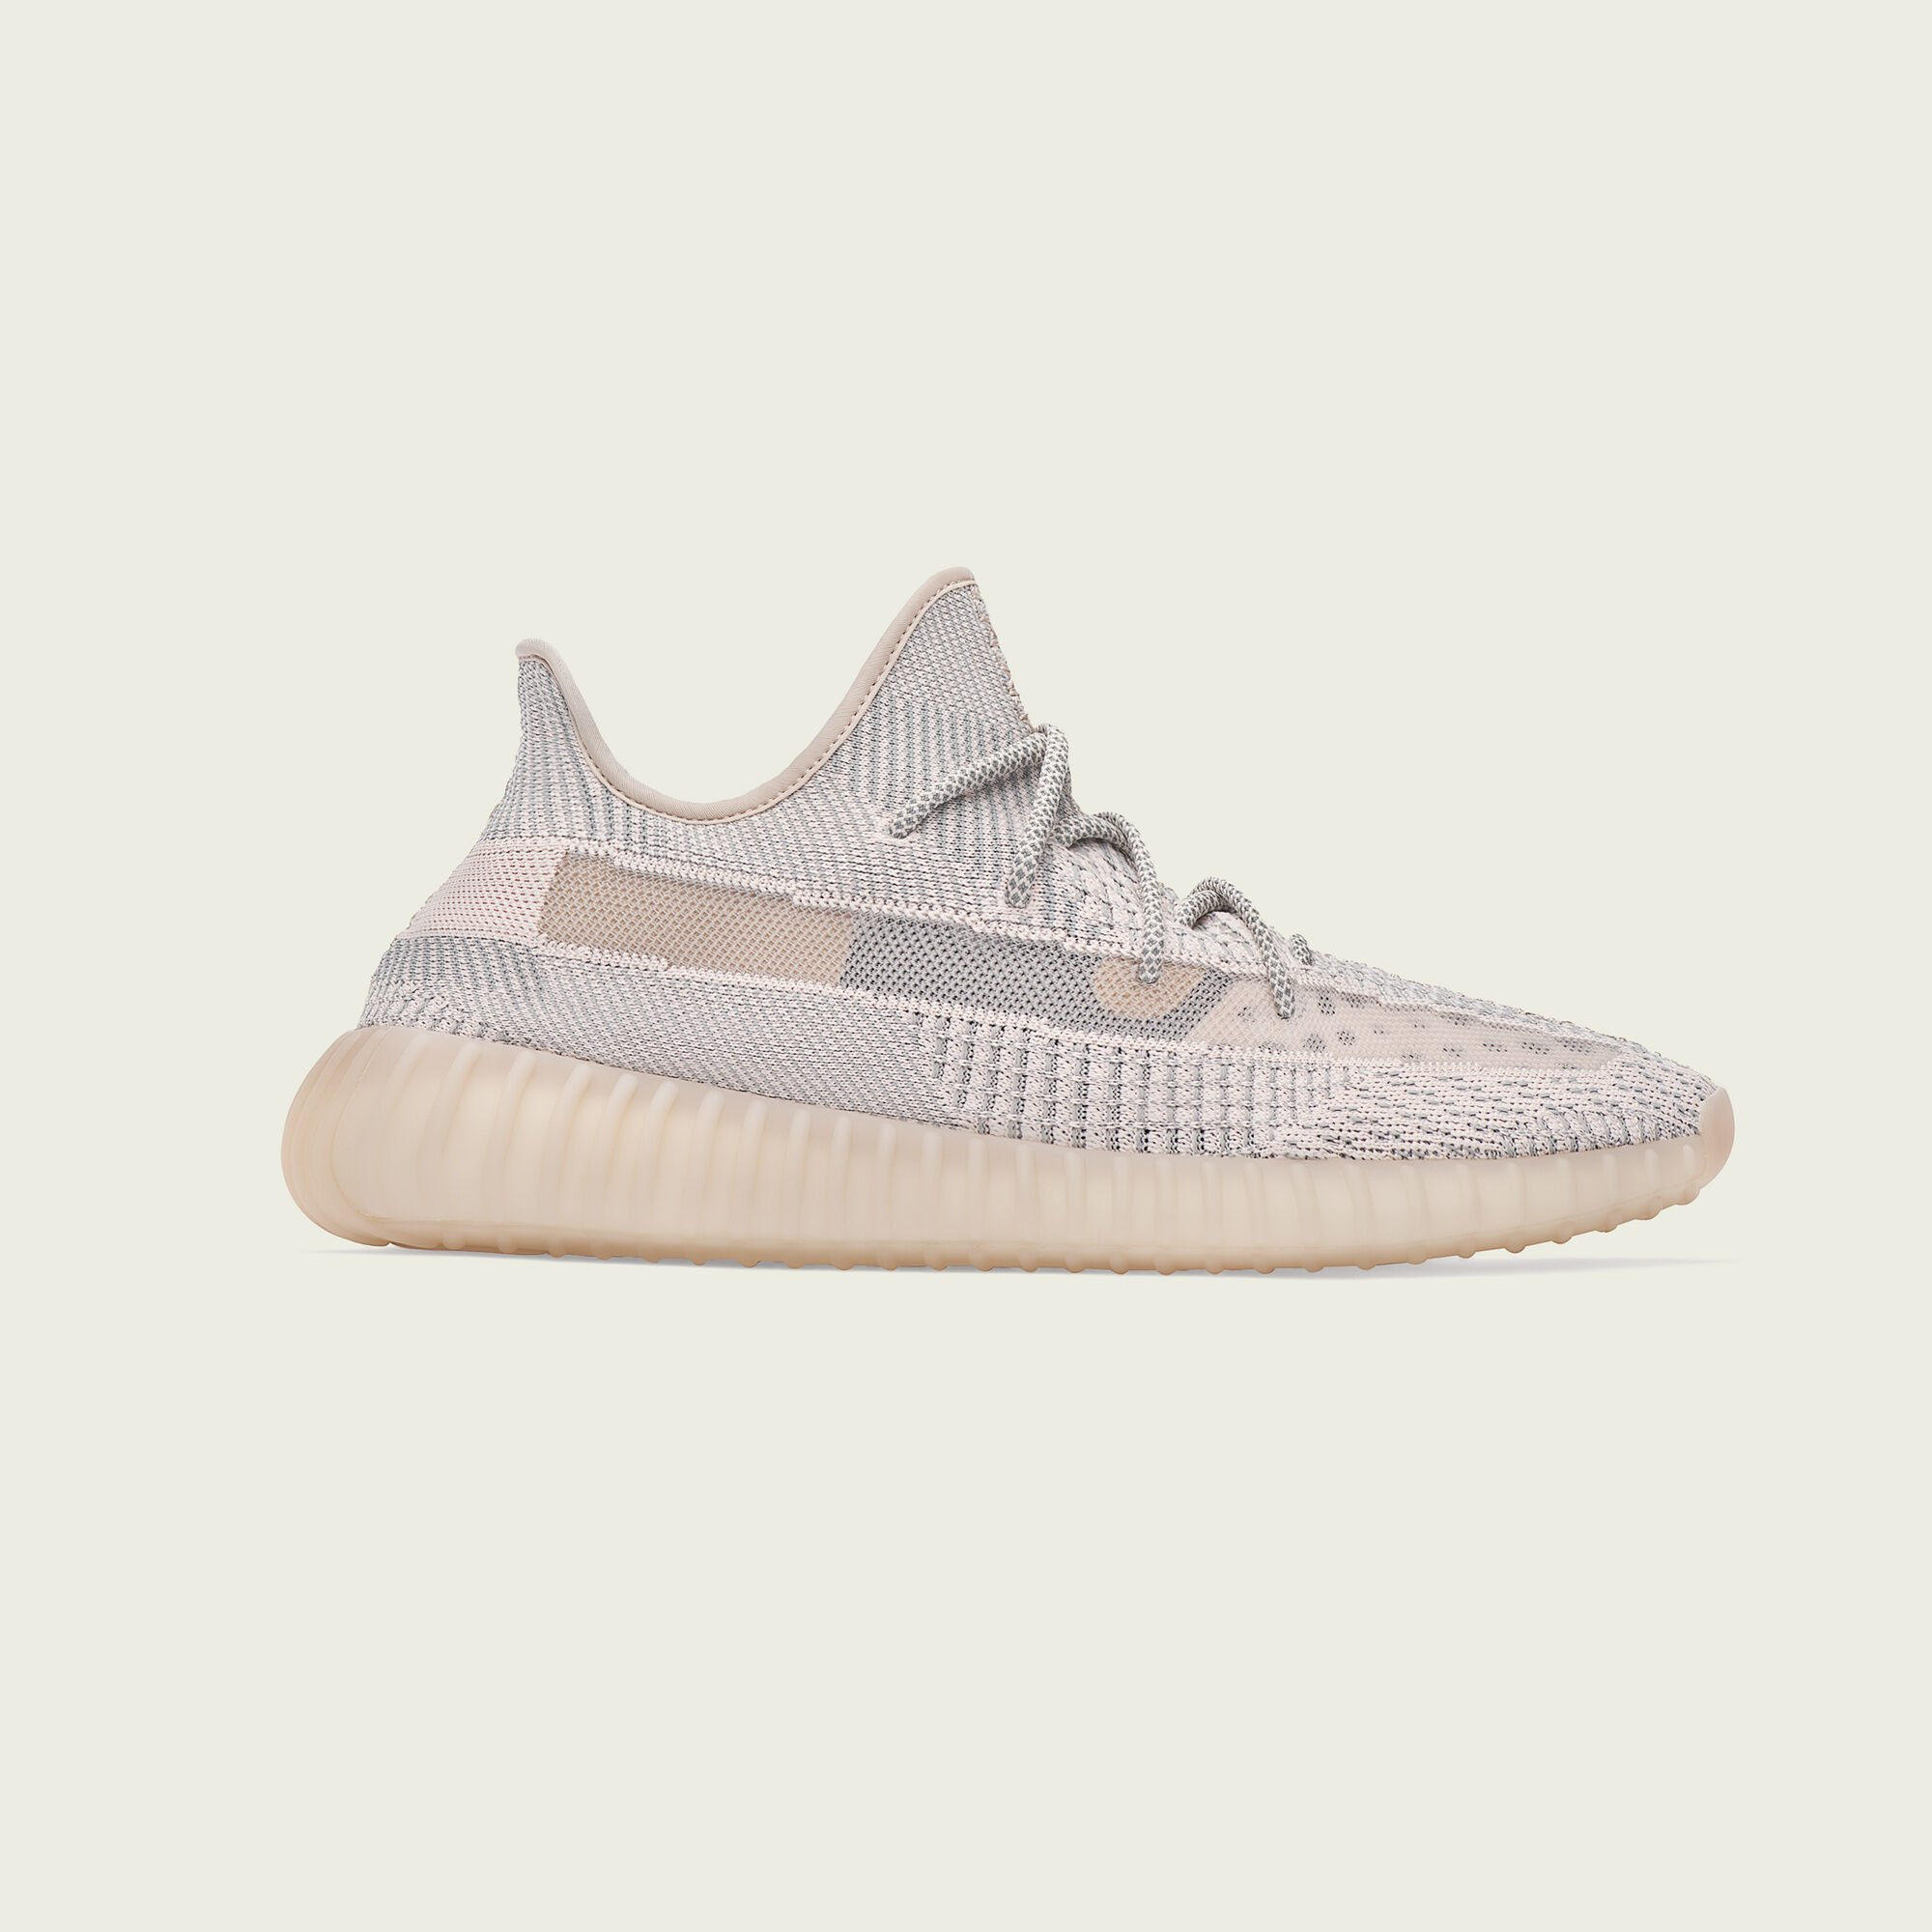 adidas Yeezy Boost 350 V2 Synth (Non-Reflective) (FV5578)